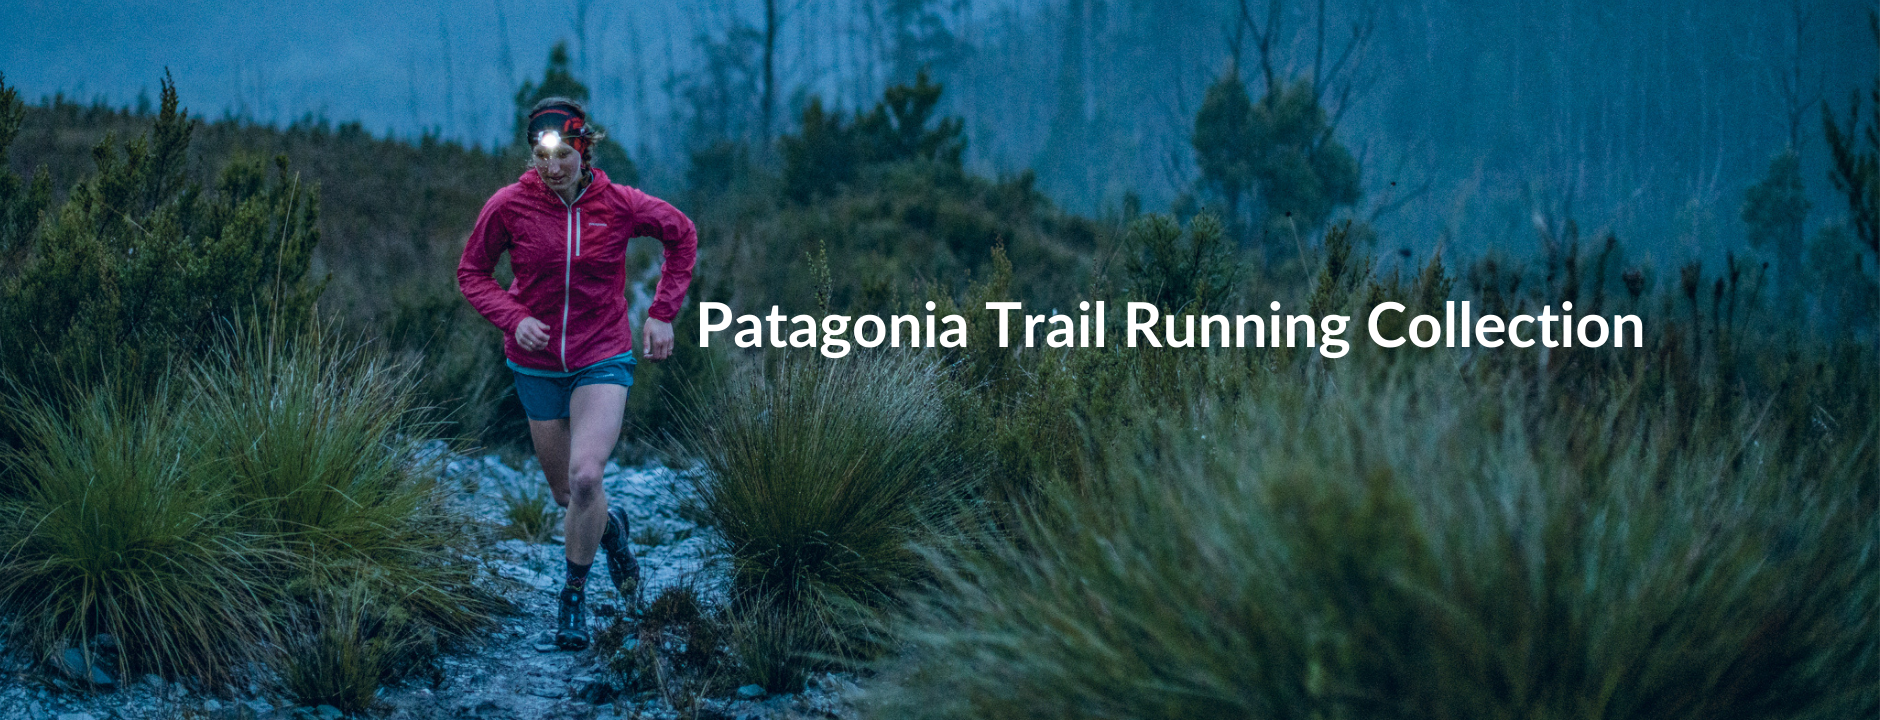 Patagonia Trail Running Collection